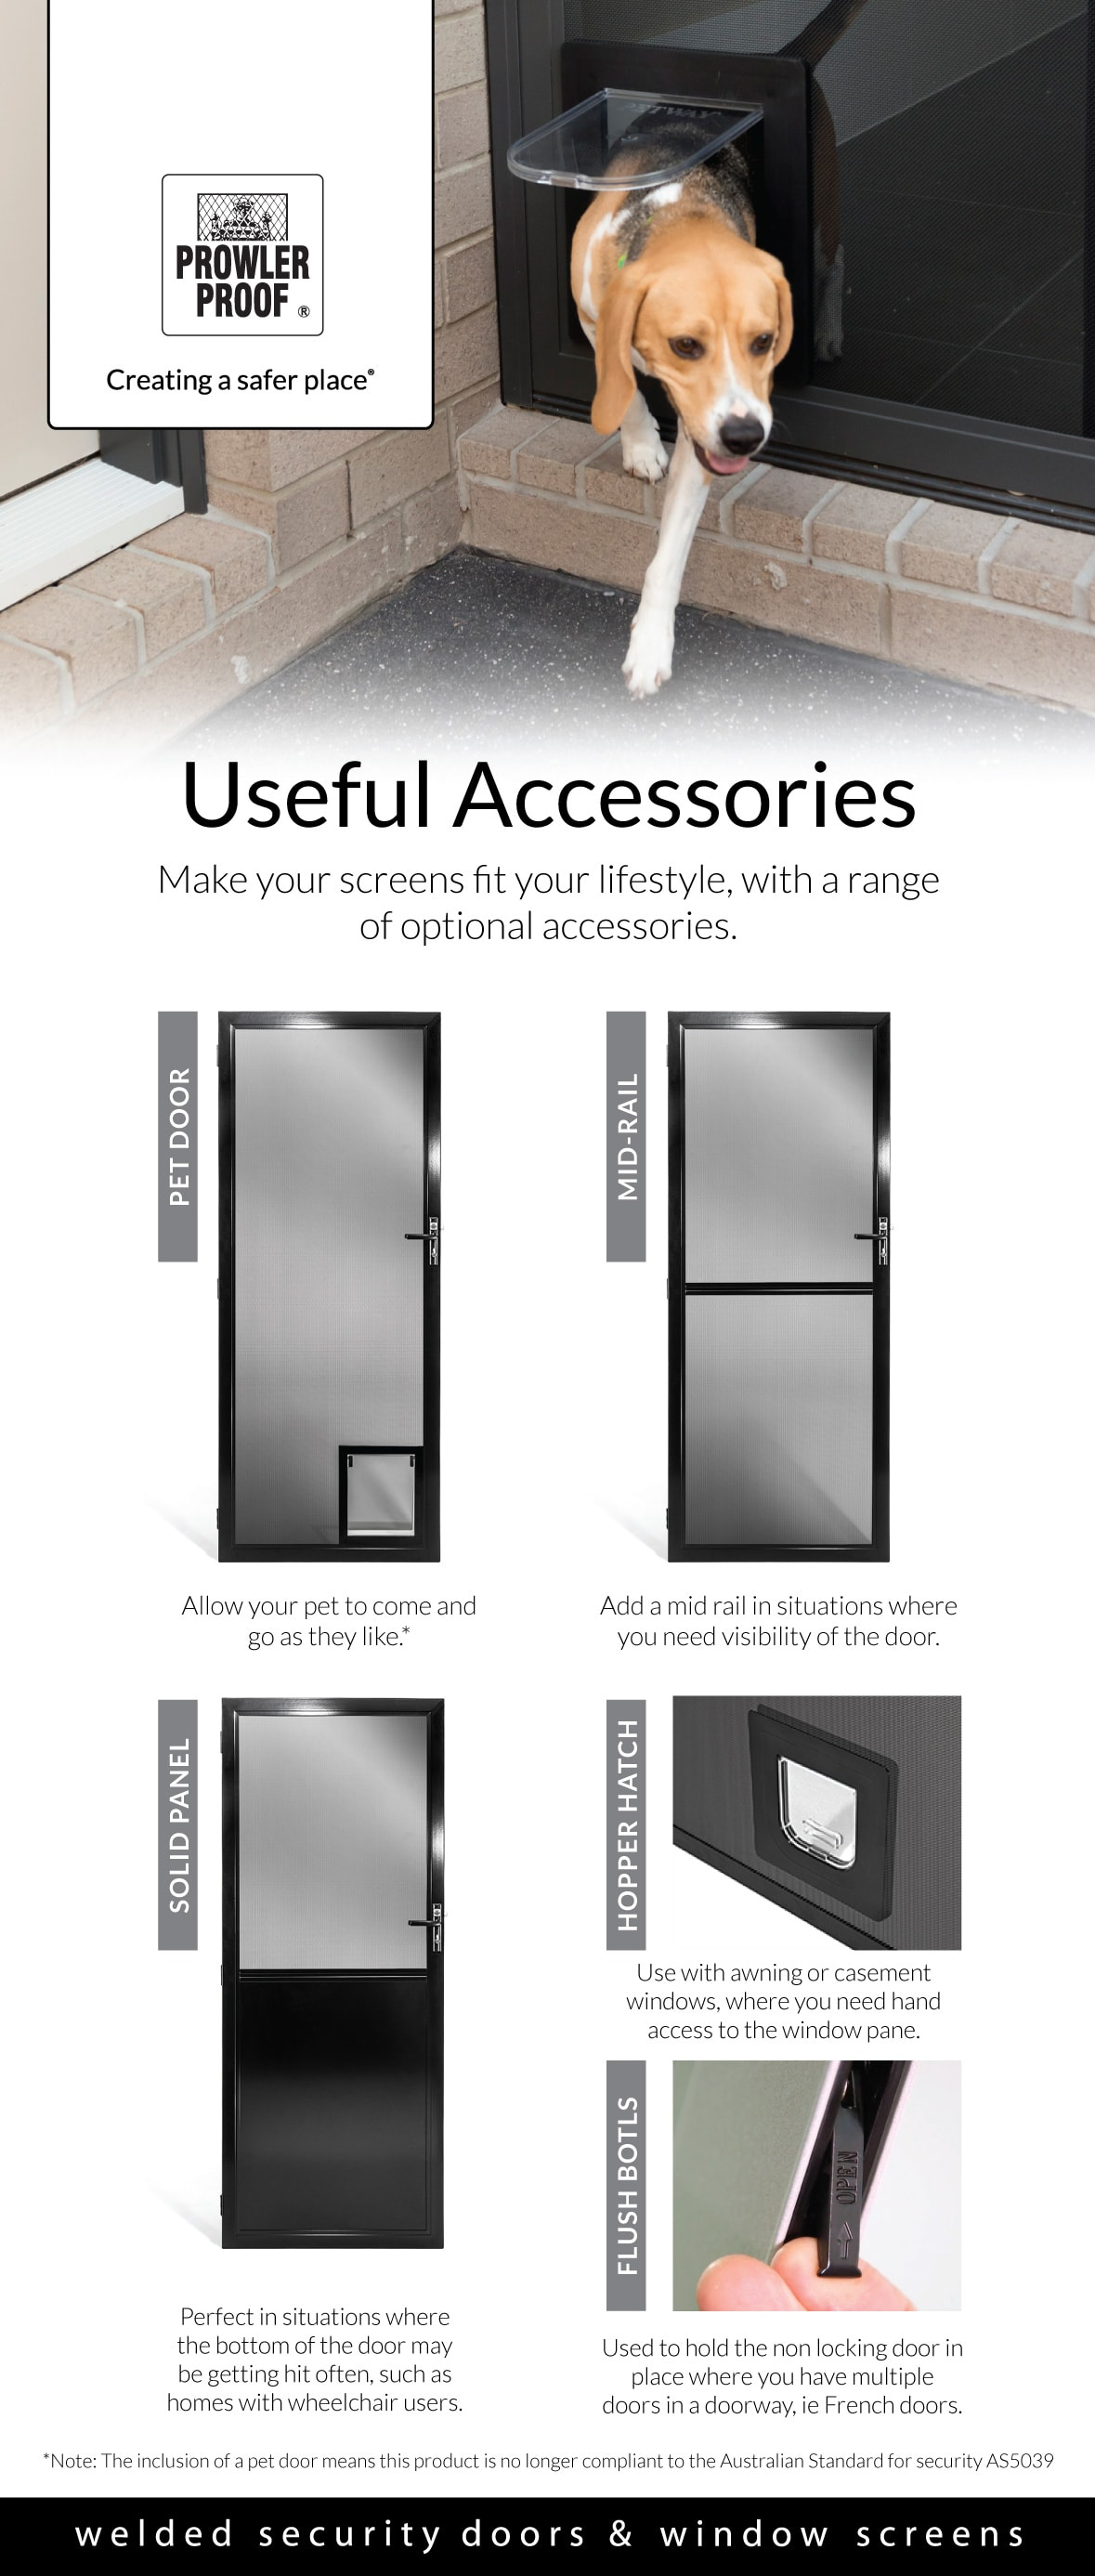 Useful Accessories Infographic